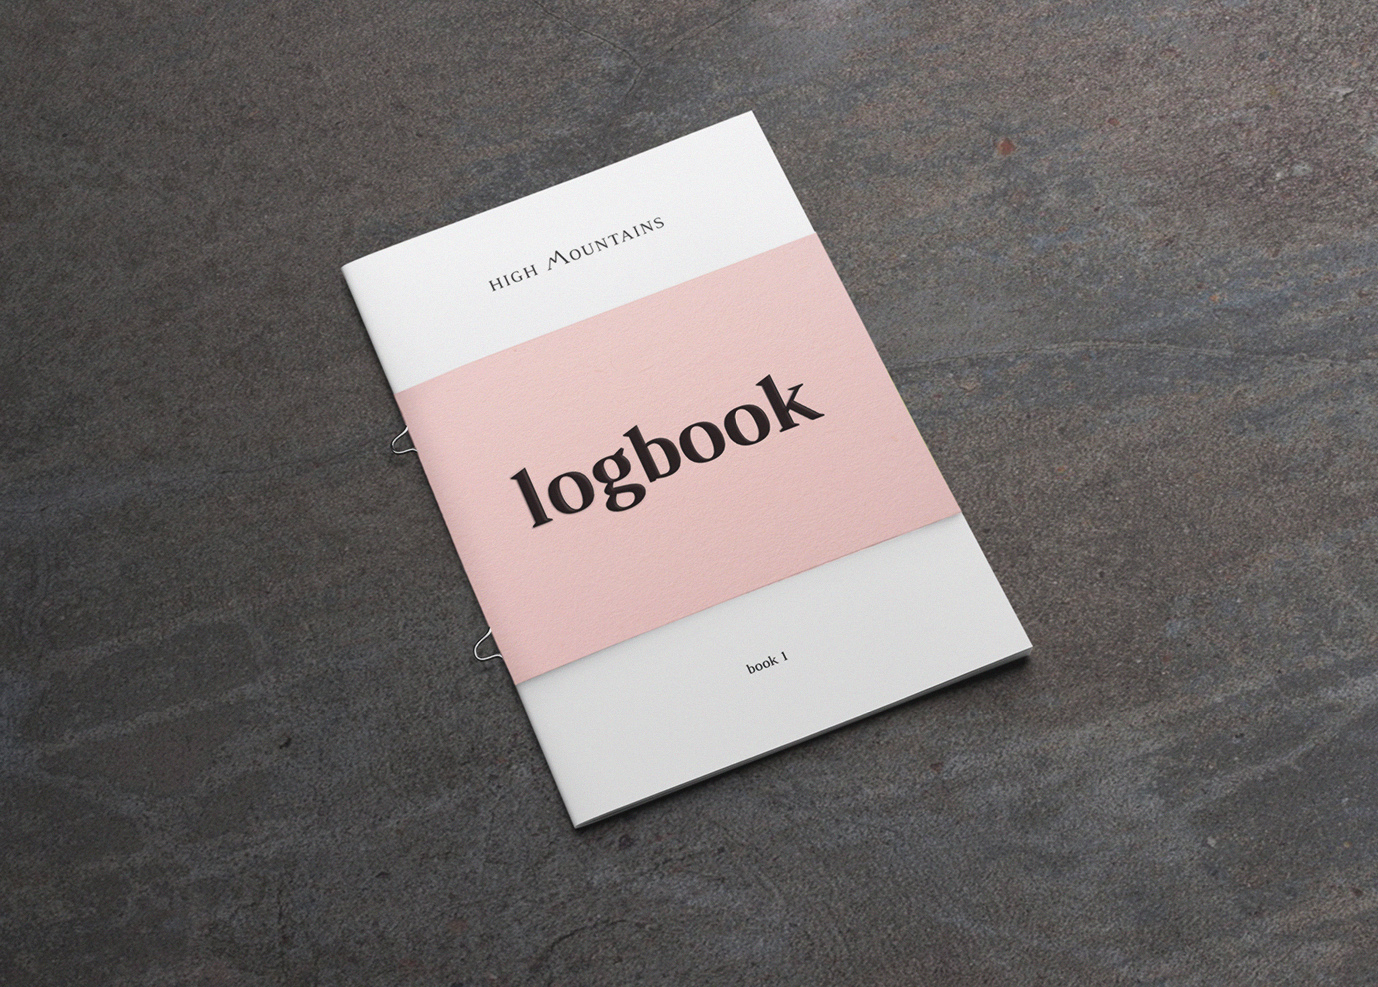 HMR Logbook cover 2